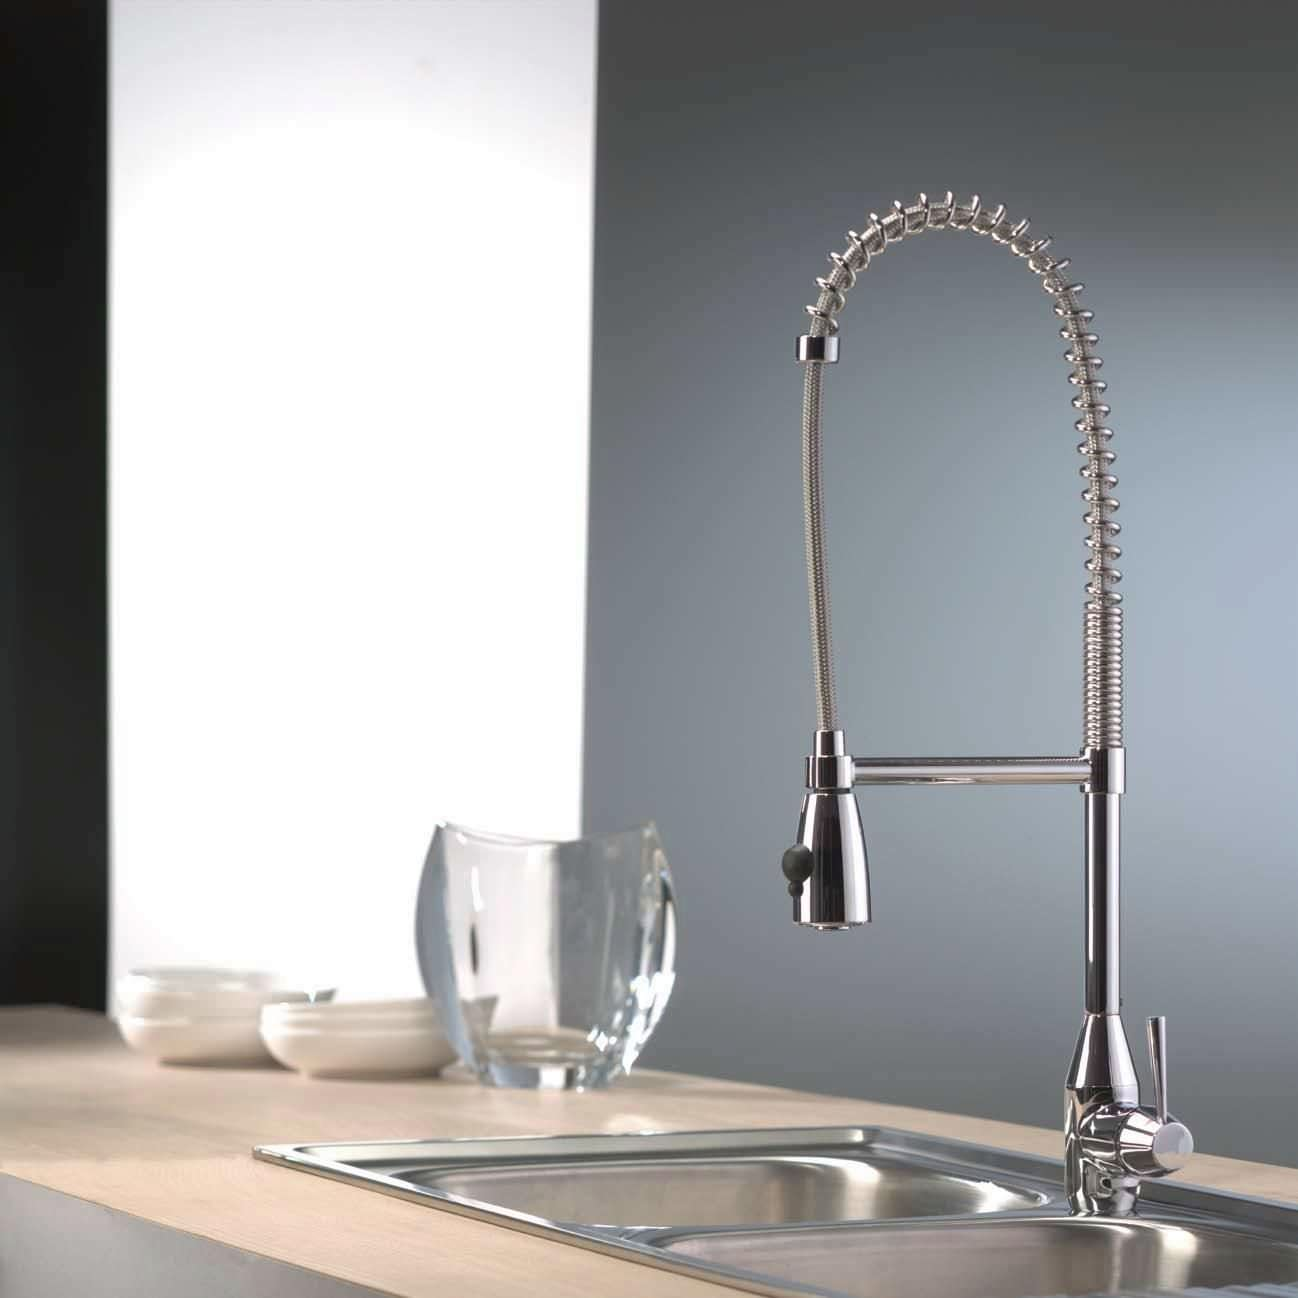 Unique Pull Out Spray Kitchen Tap Frieze - Sink Faucet Ideas ...